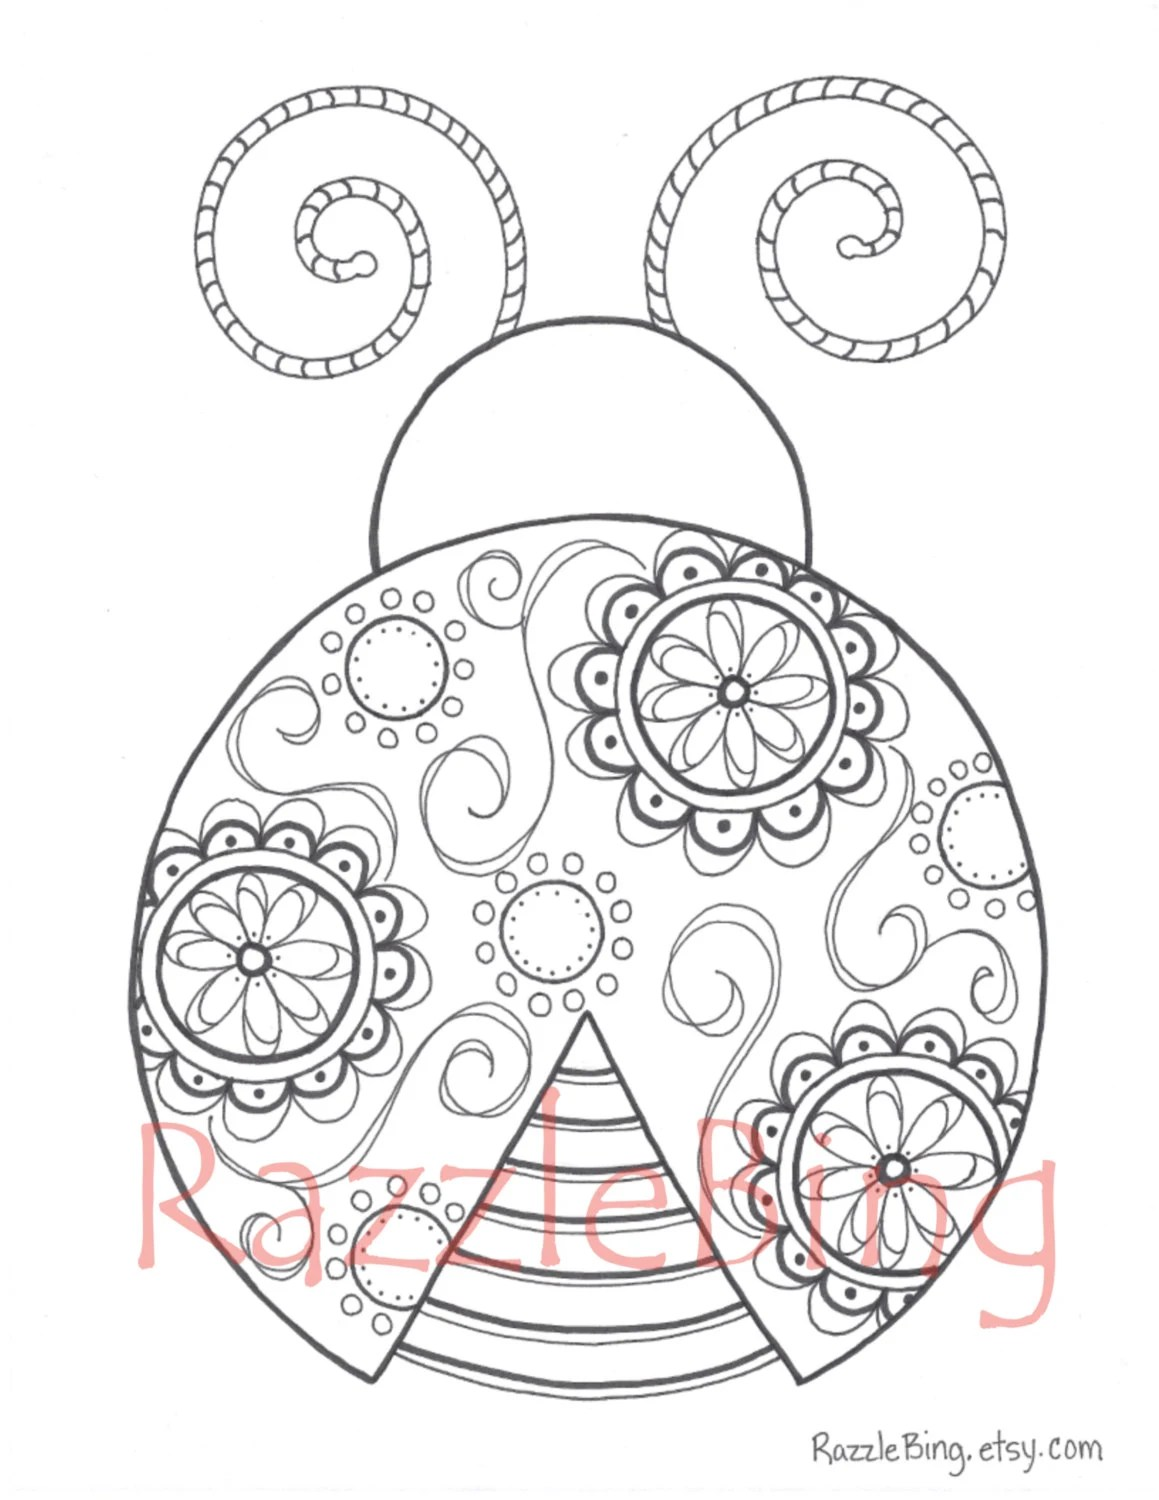 DIY Printable Coloring Page-Zentangle inspired Lady Bug Etsy